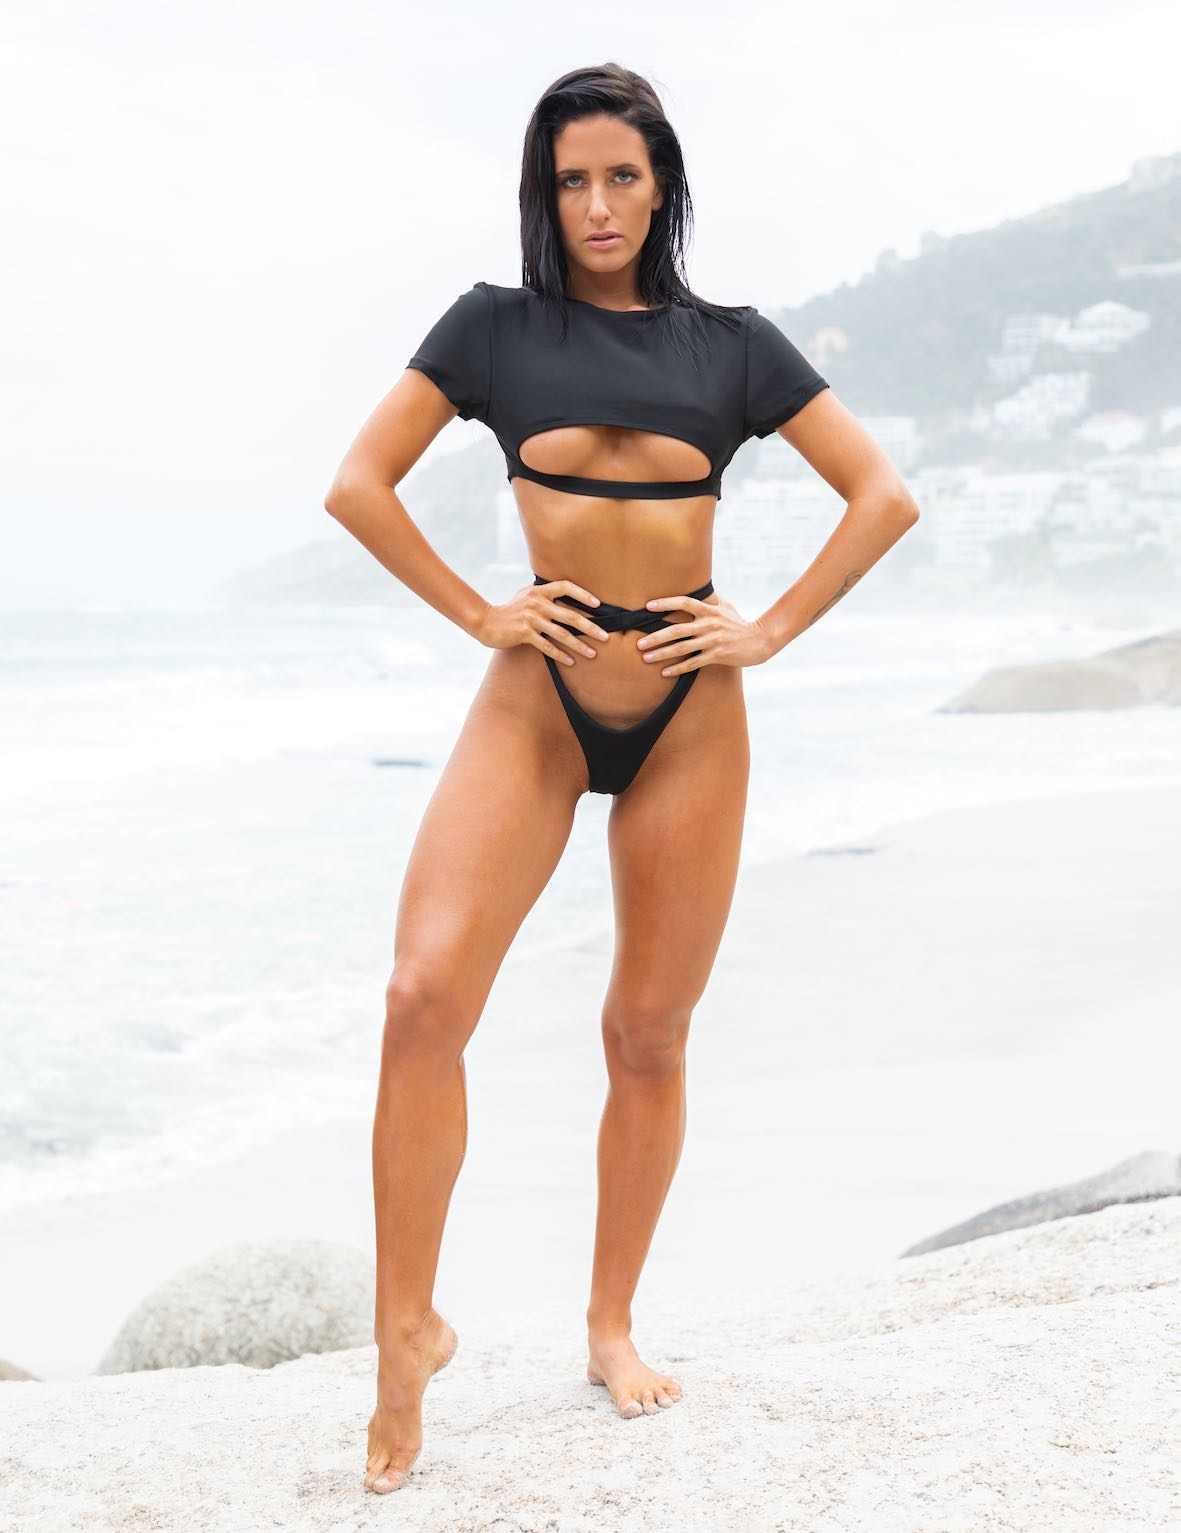 Our South African Girls feature with Danielle Lamon